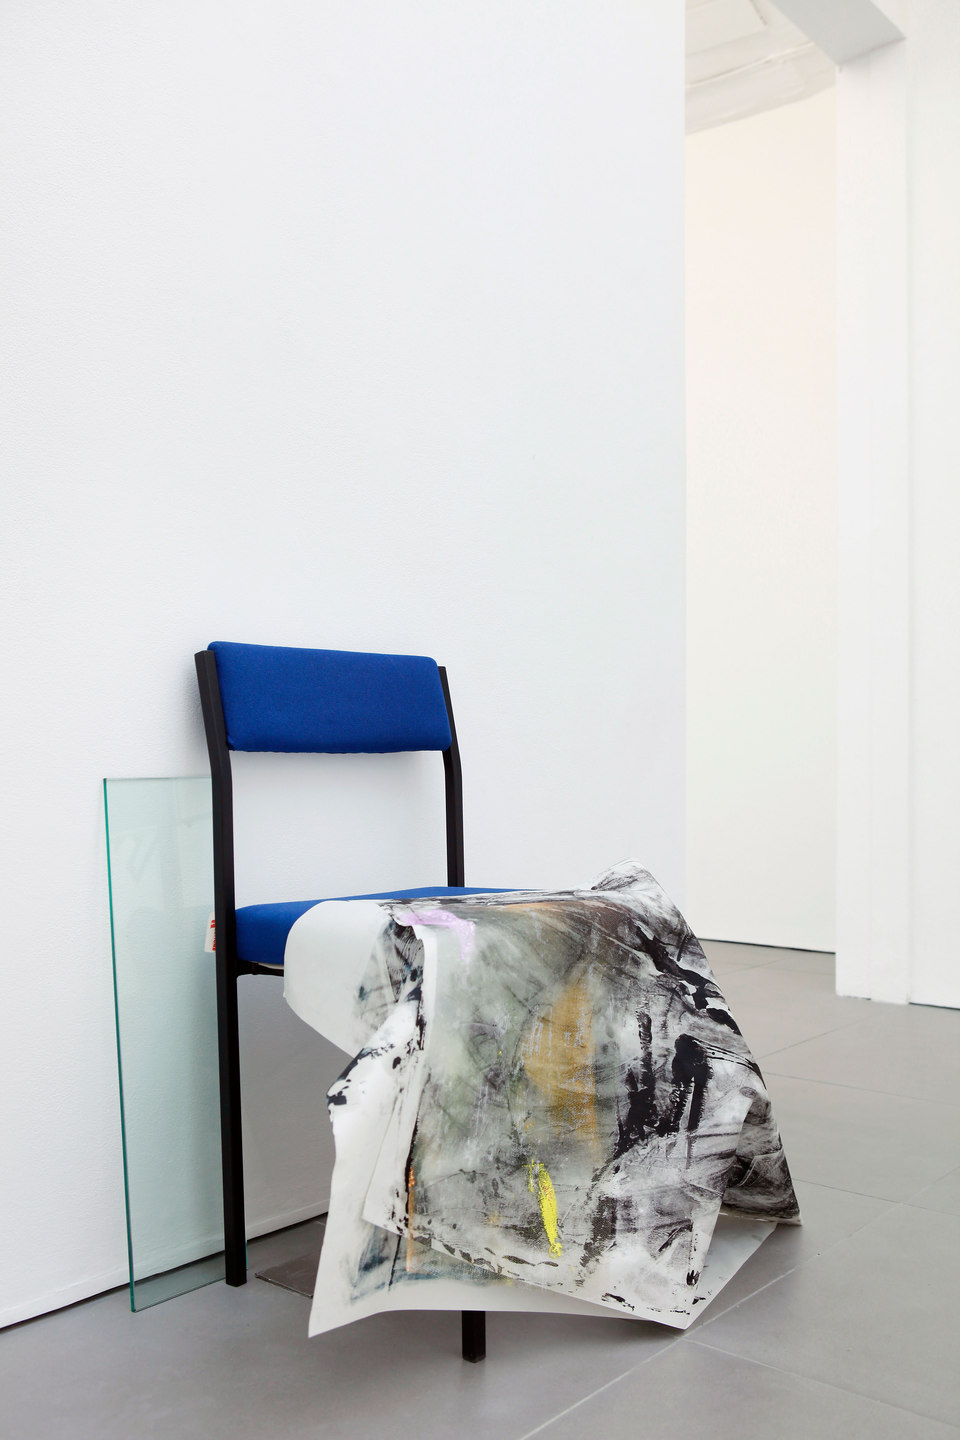 Marianne Spurr, The blue of distance, 2013, lino, metal, emergency blanket, waxed cotton, MDF, cable, oil paint on newsprint, wire, ceramic tiles, clay, ink on acetate, plastic tubing, string, acrylic paint mould, blind, chair, acrylic on gauze, glass